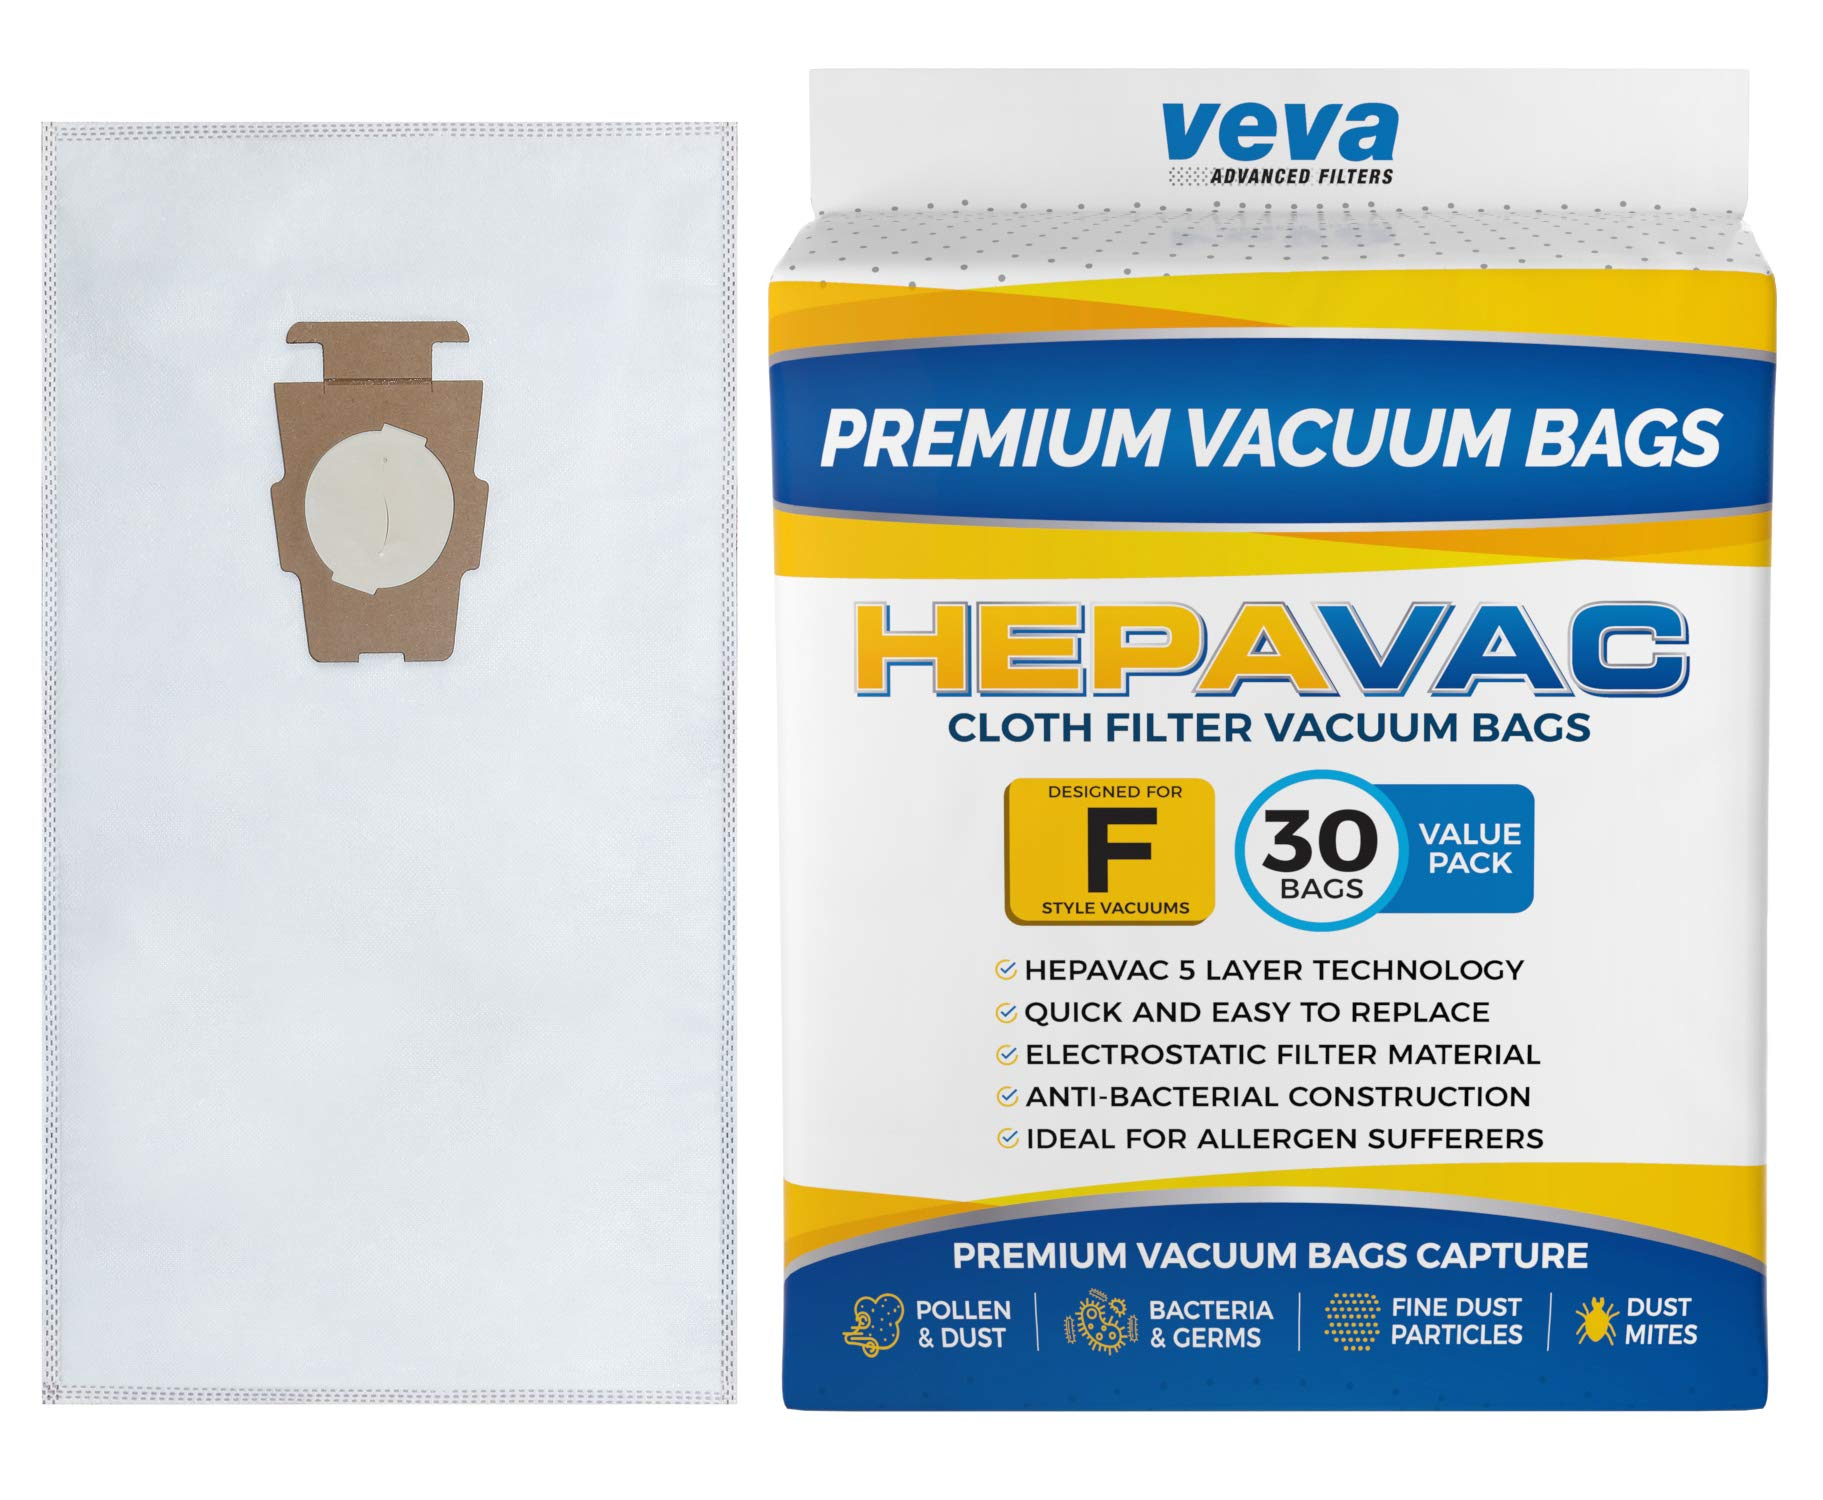 VEVA 30 Pack Premium HEPA Vacuum Bags Style F Cloth Bag for Kirby Replacement Type F, Q, 204808 204811 Avalir, Sentria I, II, G10D, Ultimate G, Diamond & Limited Edition; G3, G4, G5, G6, G7 Cleaners